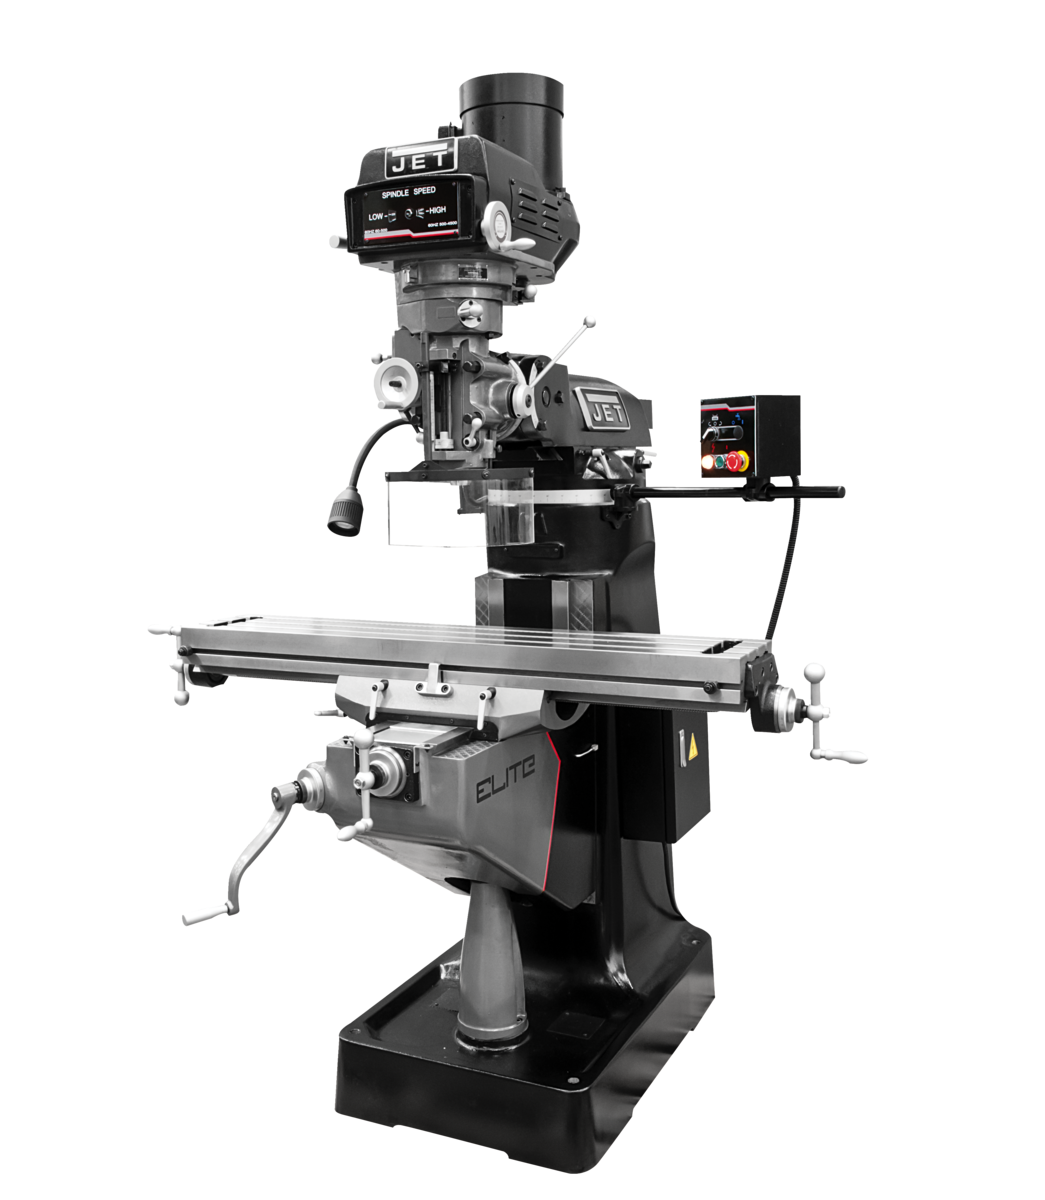 ETM-949 Mill with 3-Axis ACU-RITE 203 (Knee) DRO and Servo X, Y, Z-Axis Powerfeeds and USA Air Powered Draw Bar